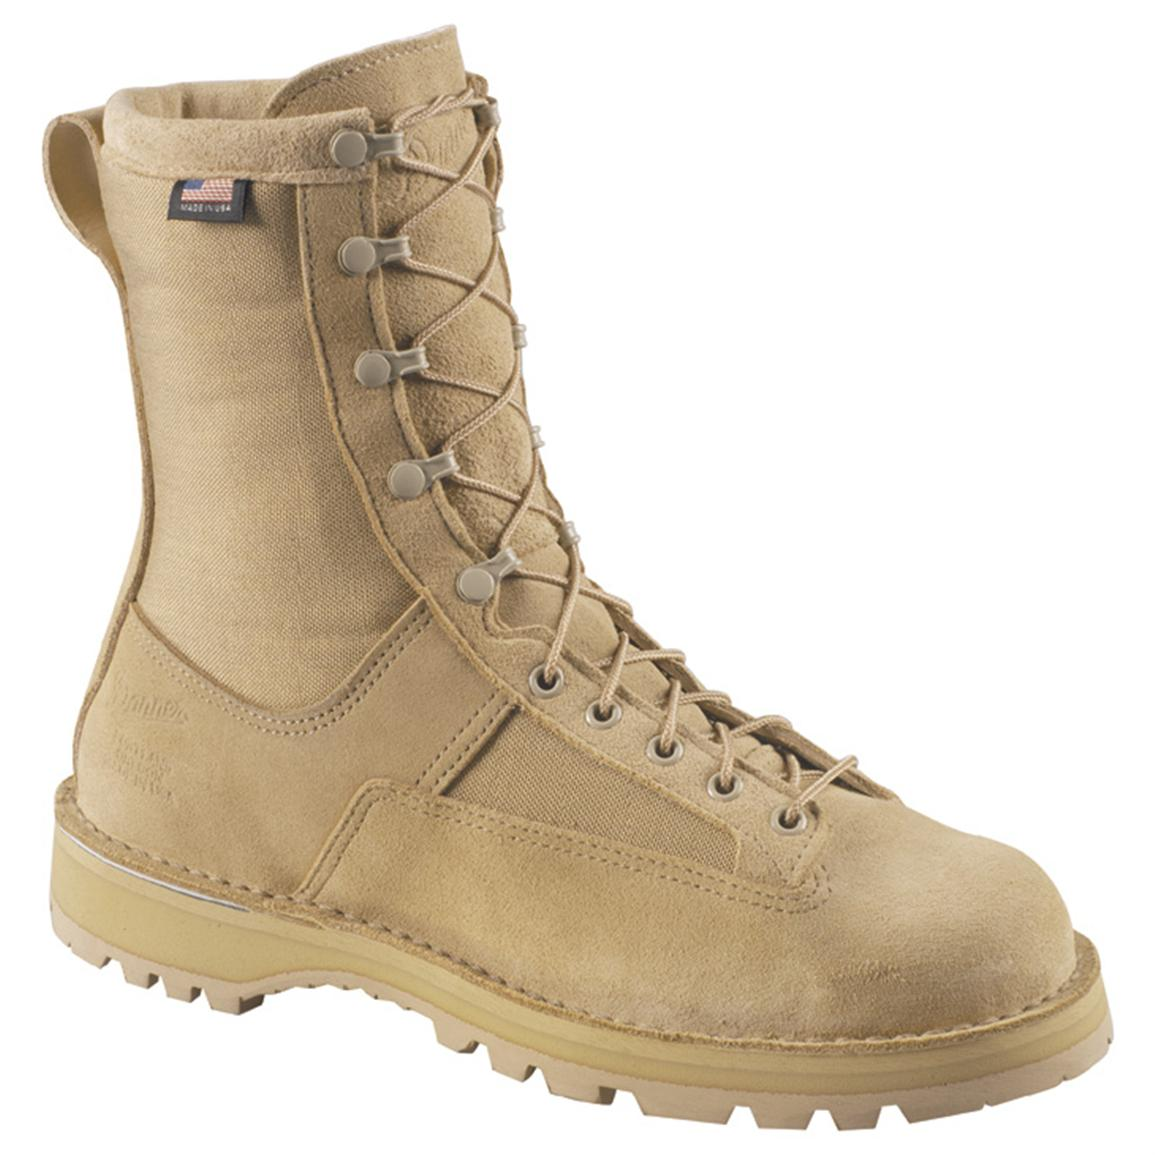 Danner Combat Boots qJ751nDe